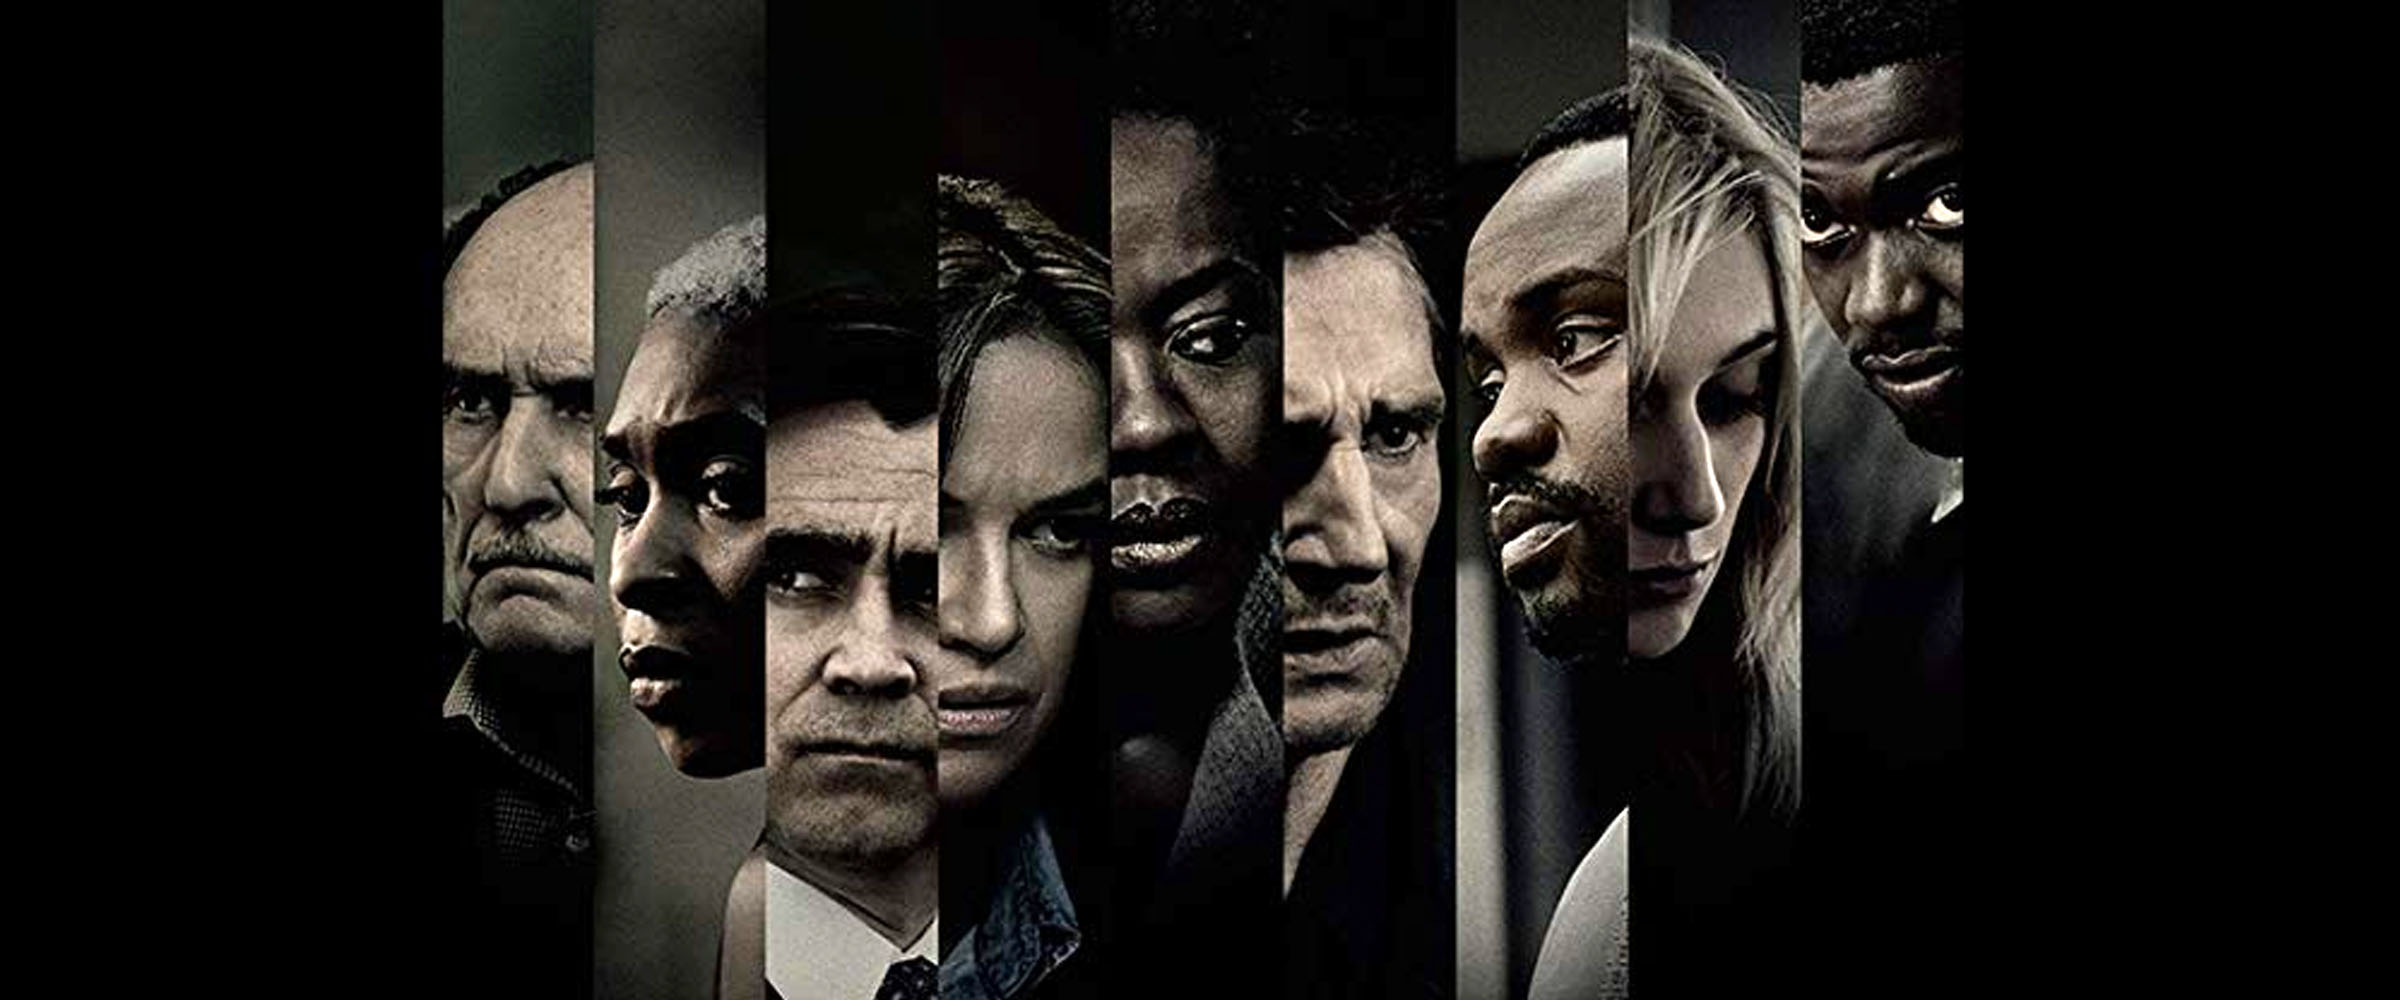 """19. THE CAST OF """"WIDOWS"""" (L-R): Robert Duvall, Cynthia Erivo, Colin Farrell, Michelle Rodriguez, Viola Davis, Liam Neeson, Brian Tyree Henry, Elizabeth Debicki, Daniel Kaluuya    After a heist attempt turns deadly for four bank robbers, three widowed wives and a new accomplice must complete the failed heist, with personal and political lives and futures hanging in the balance.    (director Steve McQueen):  """"To (several characters) of course it's about money and power. But unfortunately we are the people stuck in the middle of that environment—that cesspool, as I would call it—and we have to navigate our way through that. But what this film is about is making people aware of that power and where it comes from. In a way it's a metaphor that these four women can actually do anything about it.  What's beautiful about it is that these four women represent America. It's a country that's based on genocide and based on slavery, but on [top of] that there are these women who come from different parts of the world to create America. This is how the fabric of America developed: People from all different parts of the world come together to create the union, and these women know that they can't do without each other. So they come together to do something, to achieve their goal, and they know they can only do this by being together. That is America, as far as I'm concerned. I'm not suggesting we should go out there and just rob people. What I'm suggesting is that people should sort of think about one another in order to take power. This is what these women from different social and ethnic backgrounds are doing.   (On why he chose to adapt a British mini-series from 1983):  """"All those years later, it never got better. In fact, you know, now maybe because of #MeToo, the public is just becoming aware of certain things, certain aspects of that dialogue that was happening 35 years ago on a TV show. It stayed with me because nothing had changed."""" -  Slate, November 20, 2018"""